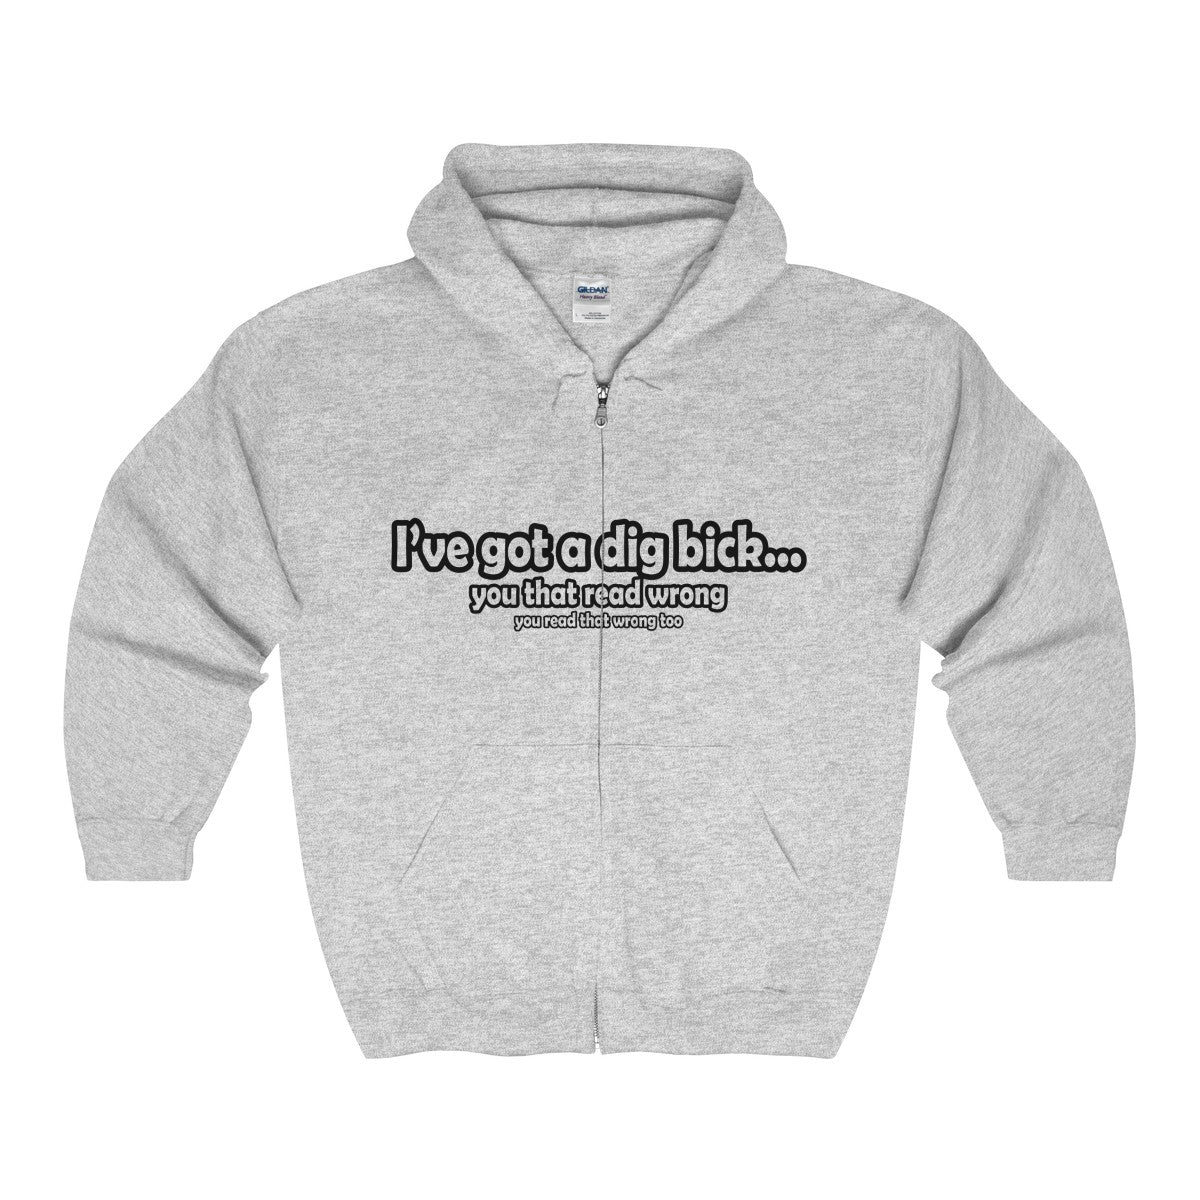 I've got a dig bick you read that wrong men's unisex zip hoodie Nerdedness